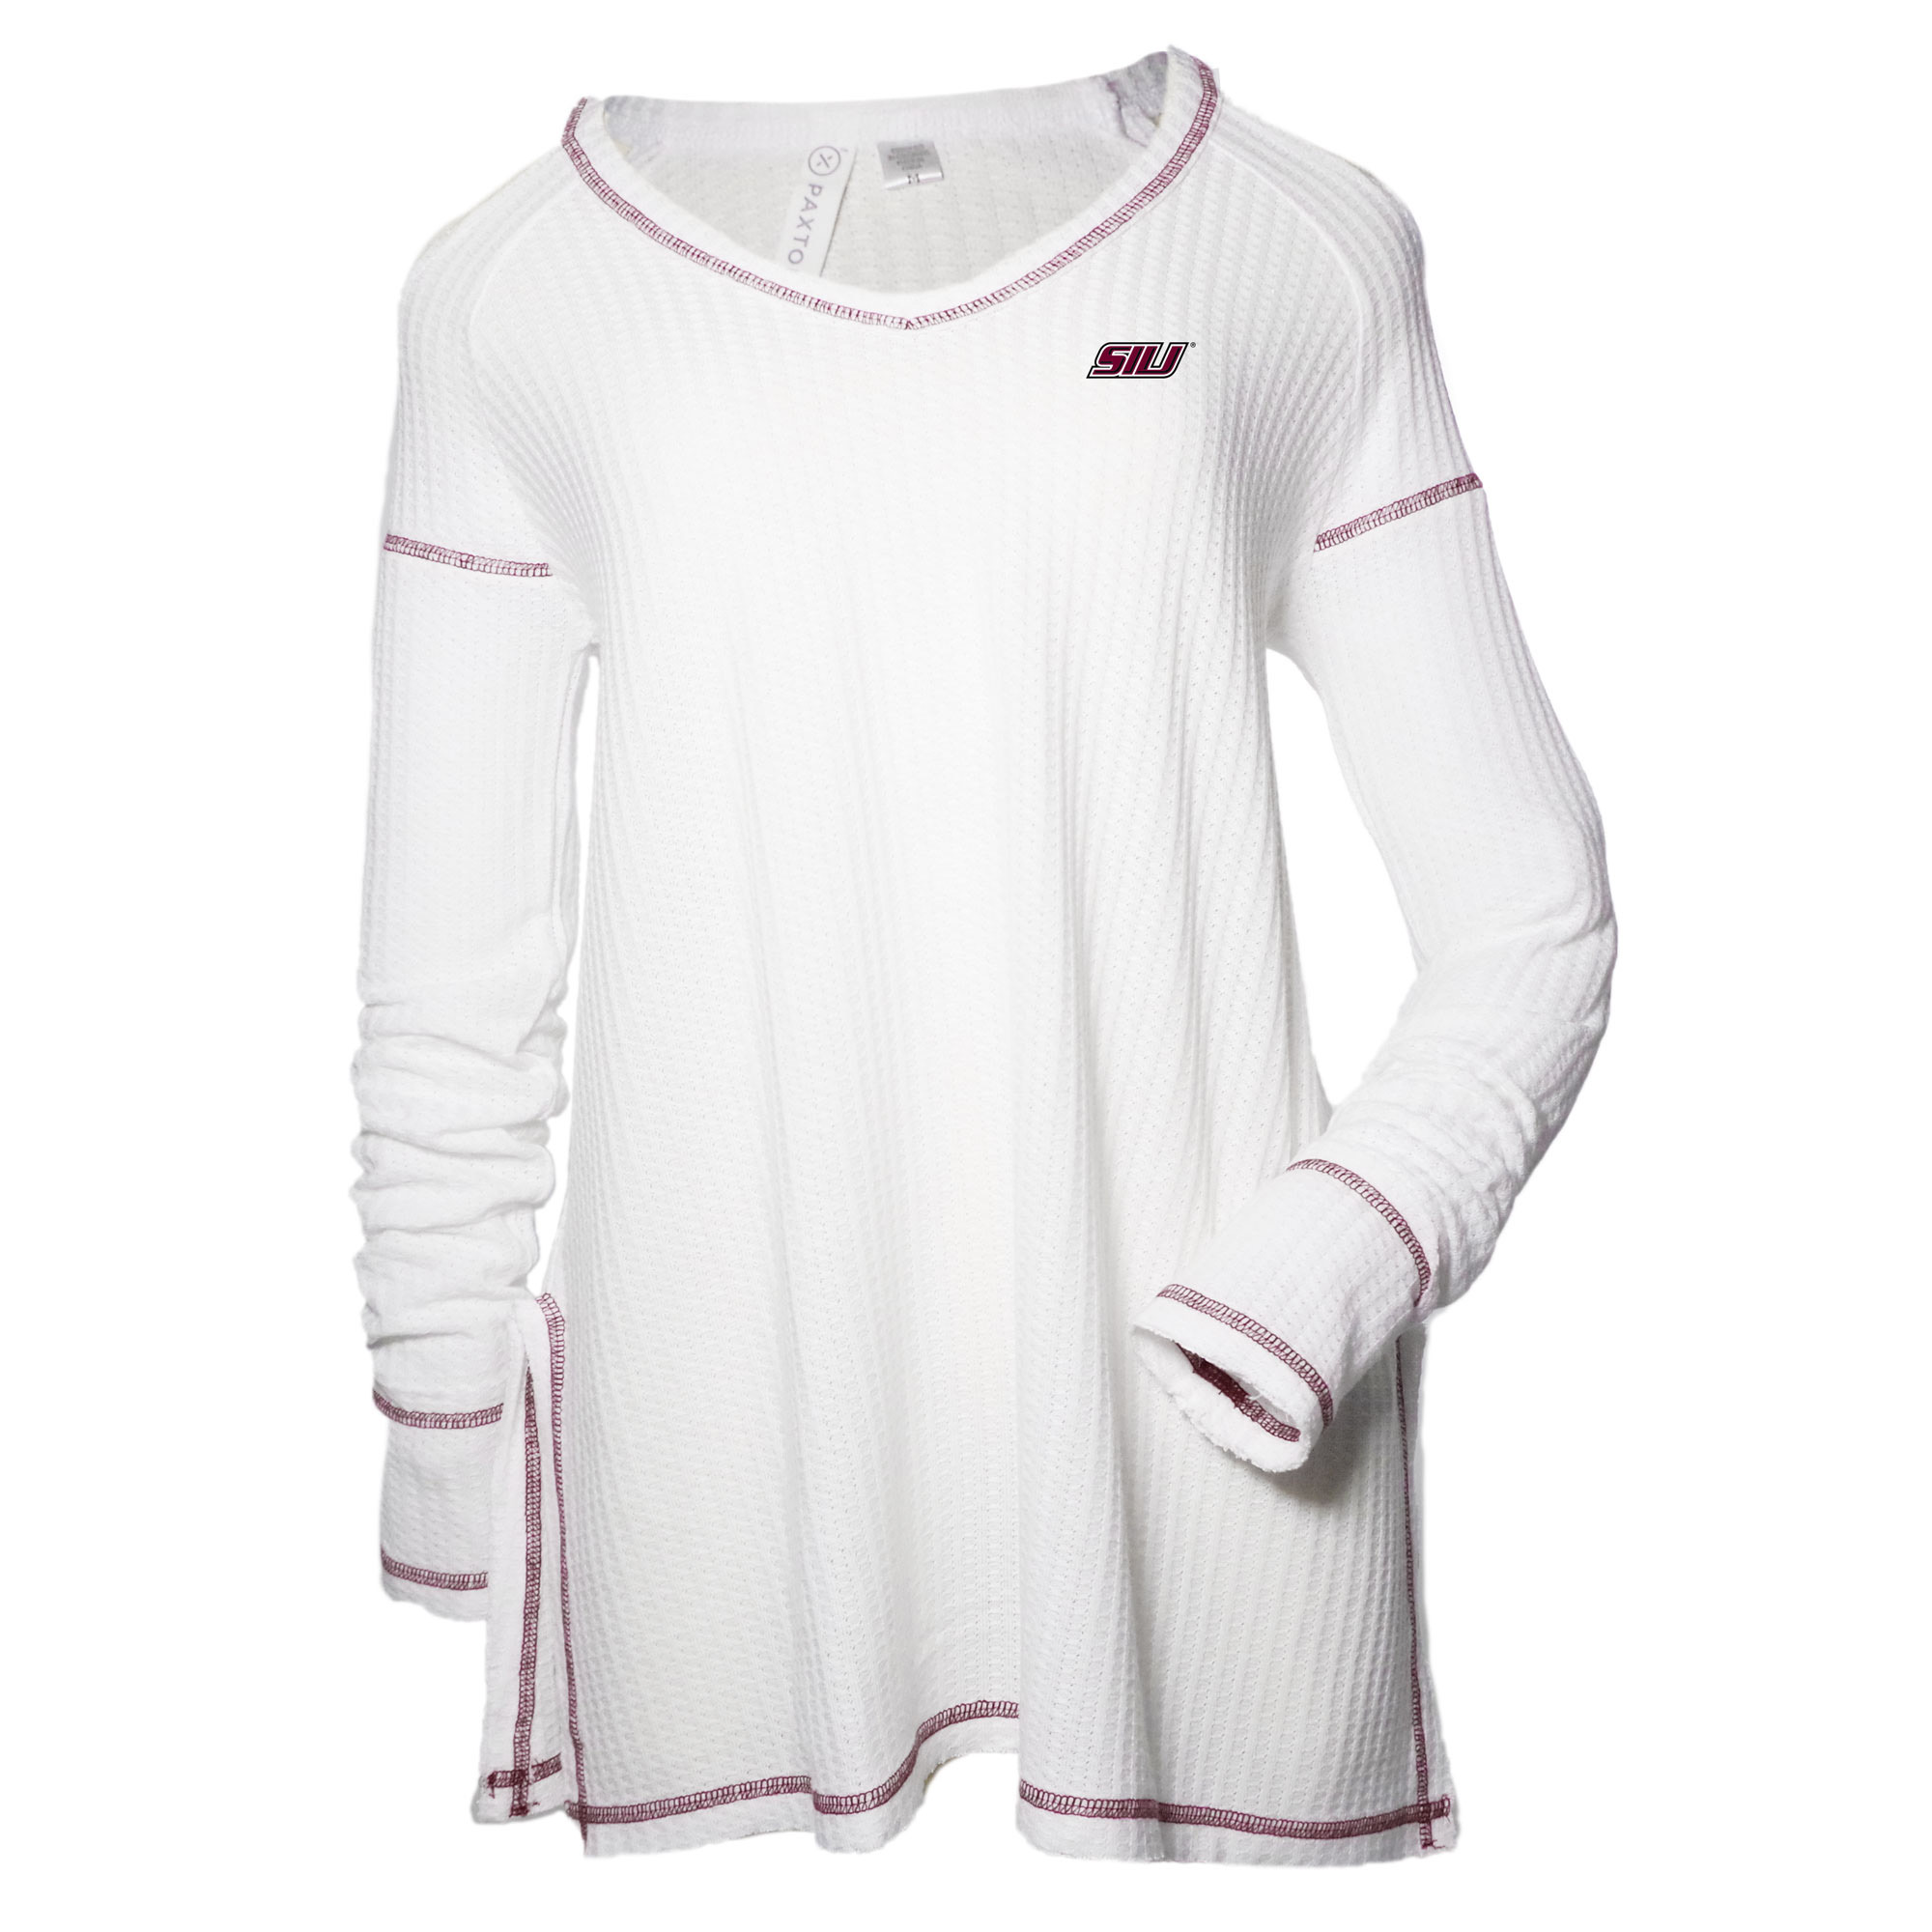 Image for the PAXTON® SIU TELLURIDE WAFFLE KNIT LONG SLEEVE TOP product